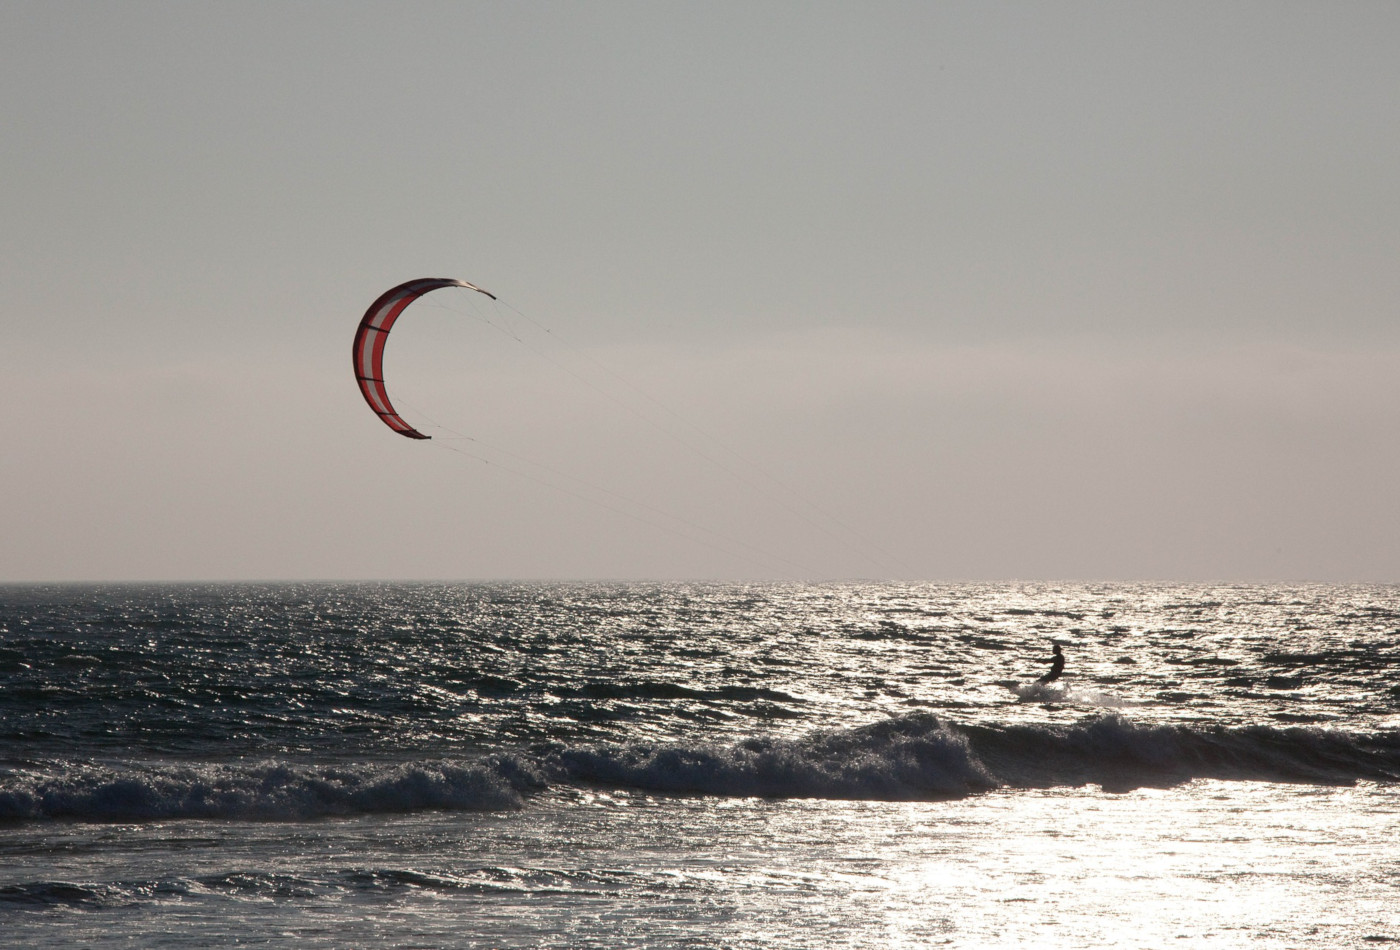 Windsurfing in Dorset